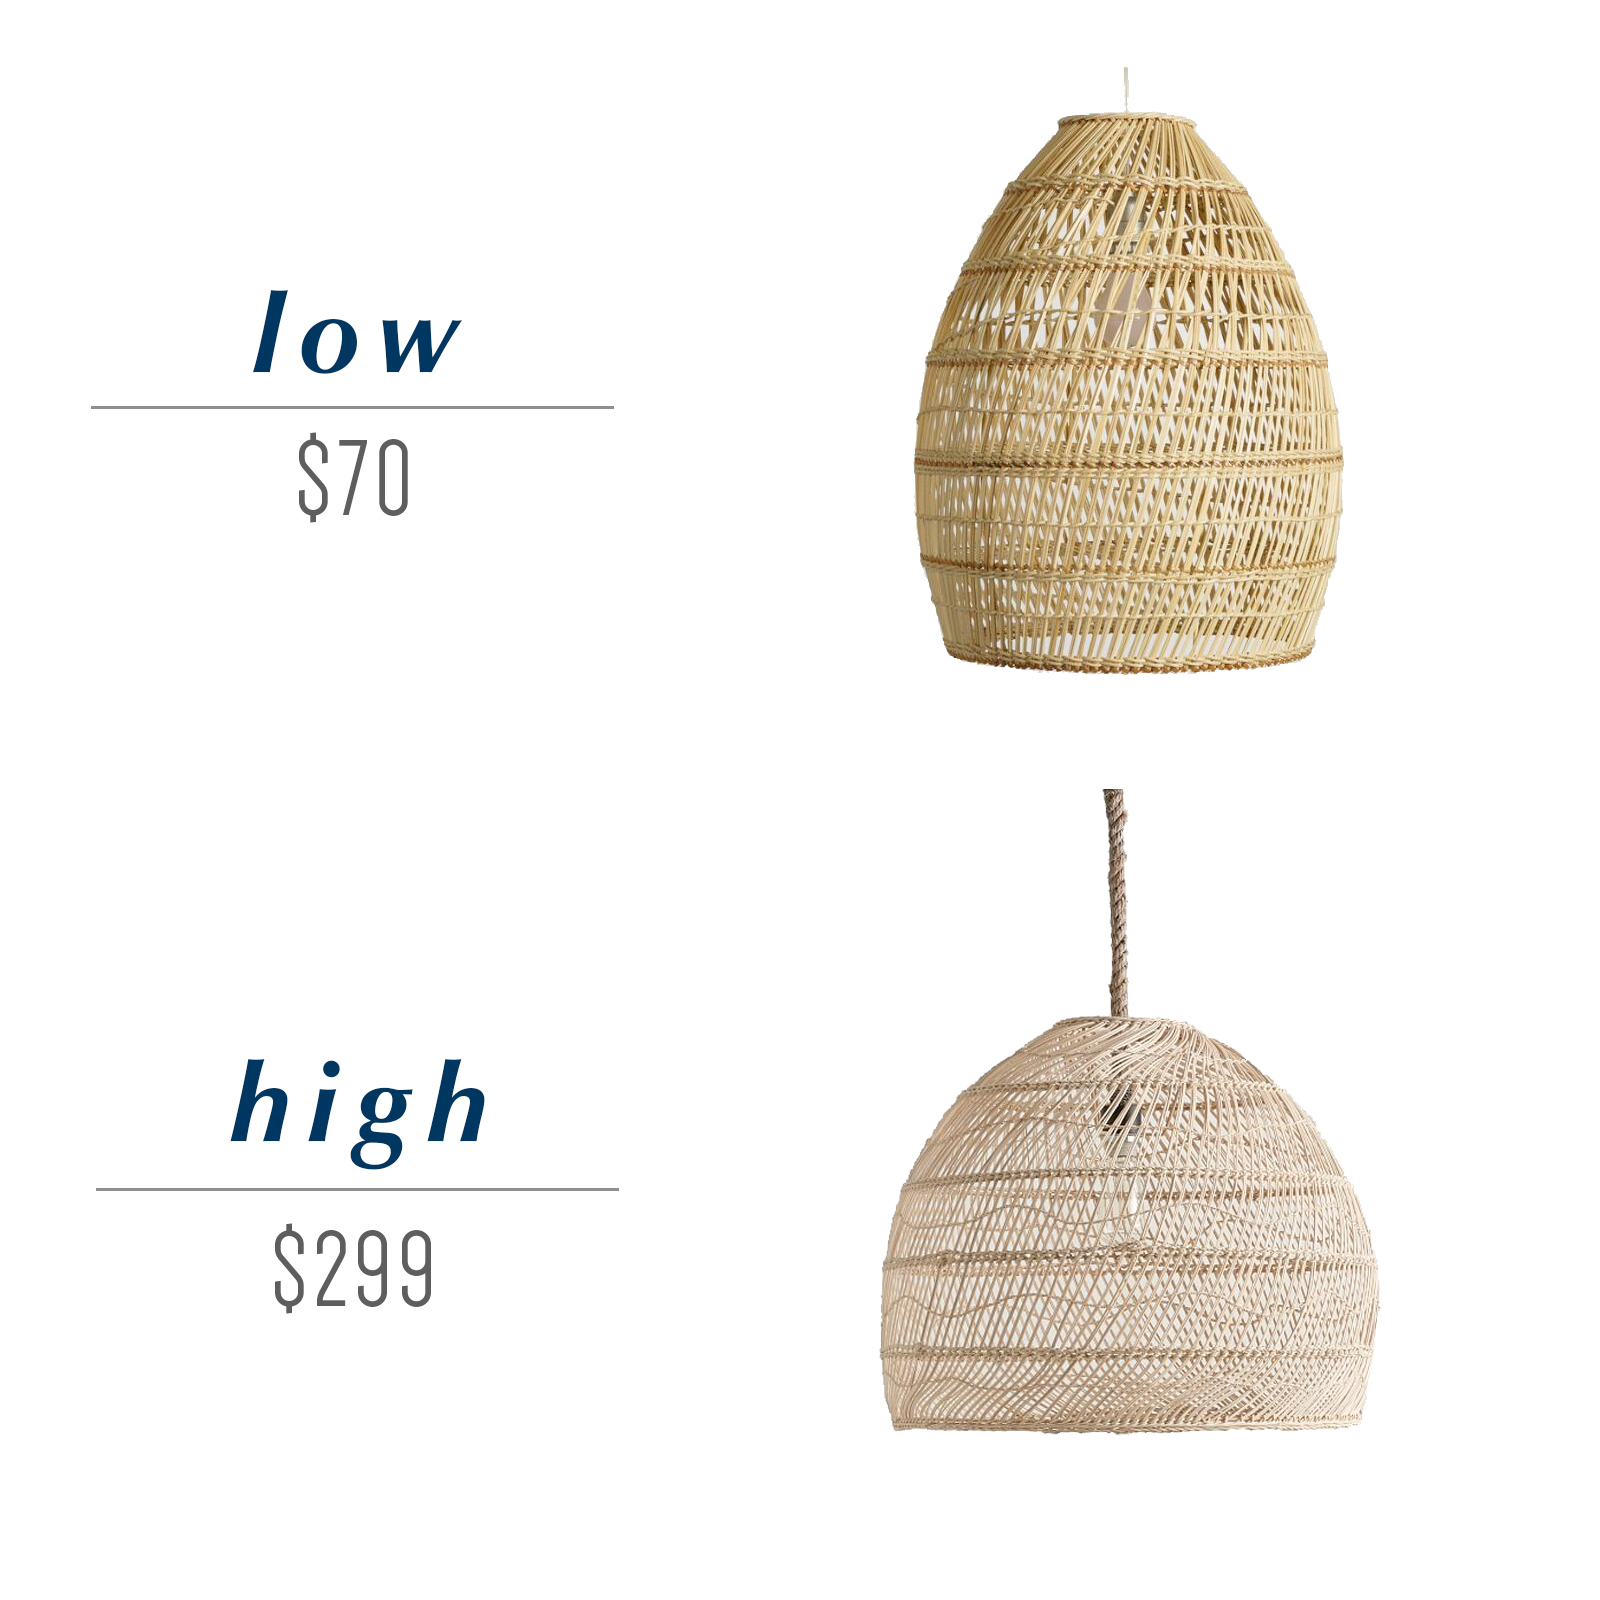 Get the look for less or decide to splurge! Come see the budget-friendly and spend-worthy pieces of furniture in this blog post including the high/low sources for this rattan pendant light. #coastaldecor #coastalhome